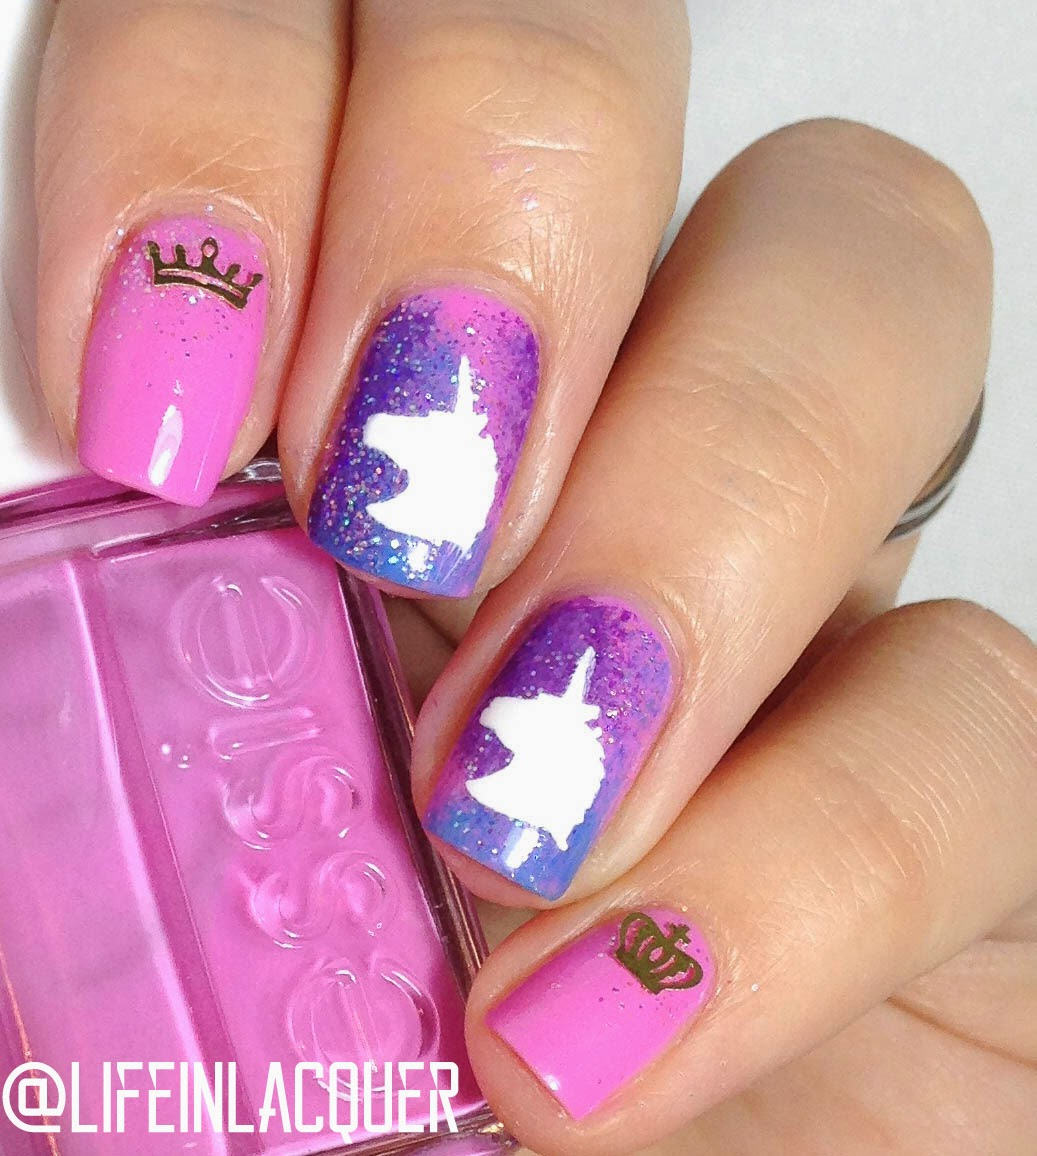 Fantasy Unicorn Nail Art - Life In Lacquer: Fantasy Unicorn Nail Art